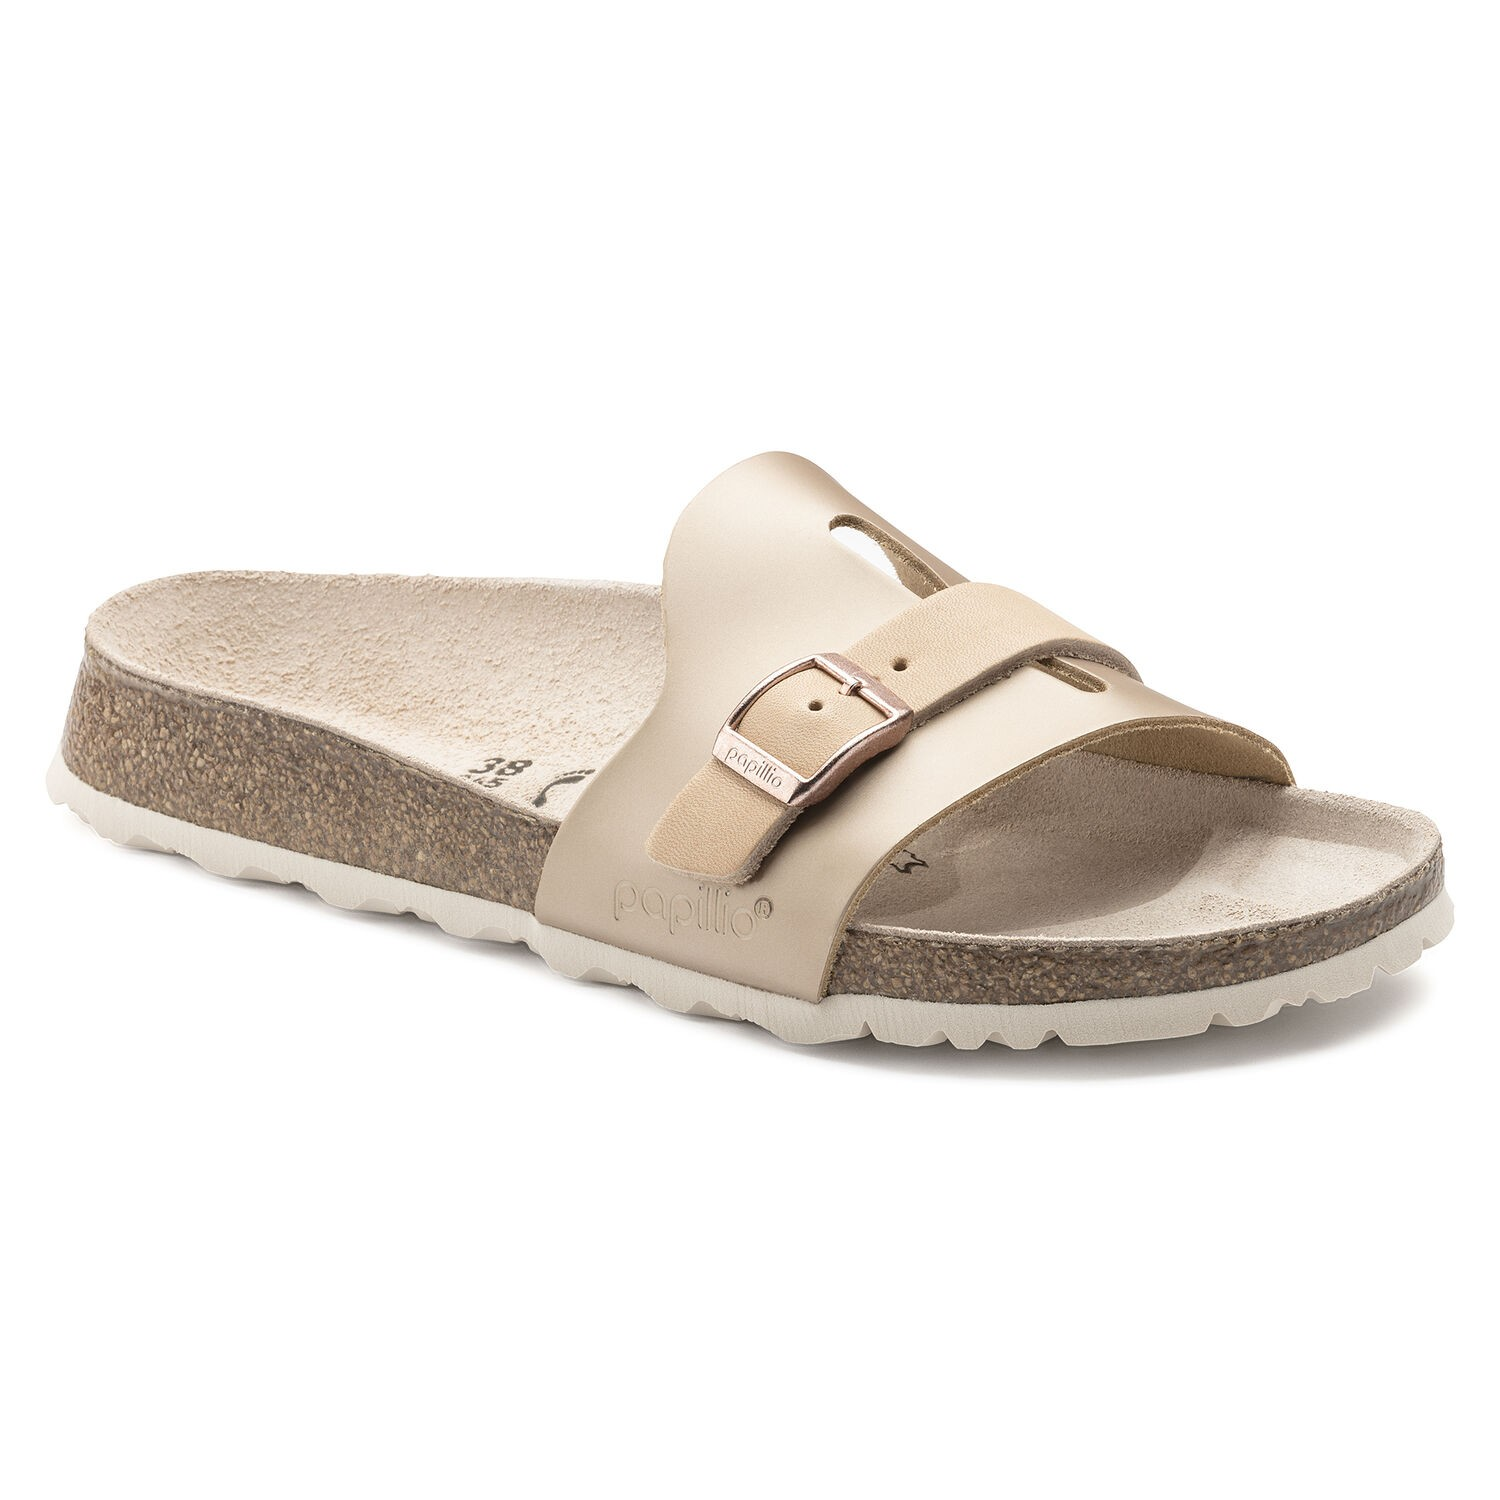 Birkenstock Carmen NL Frosted Metallic Rose Narrow